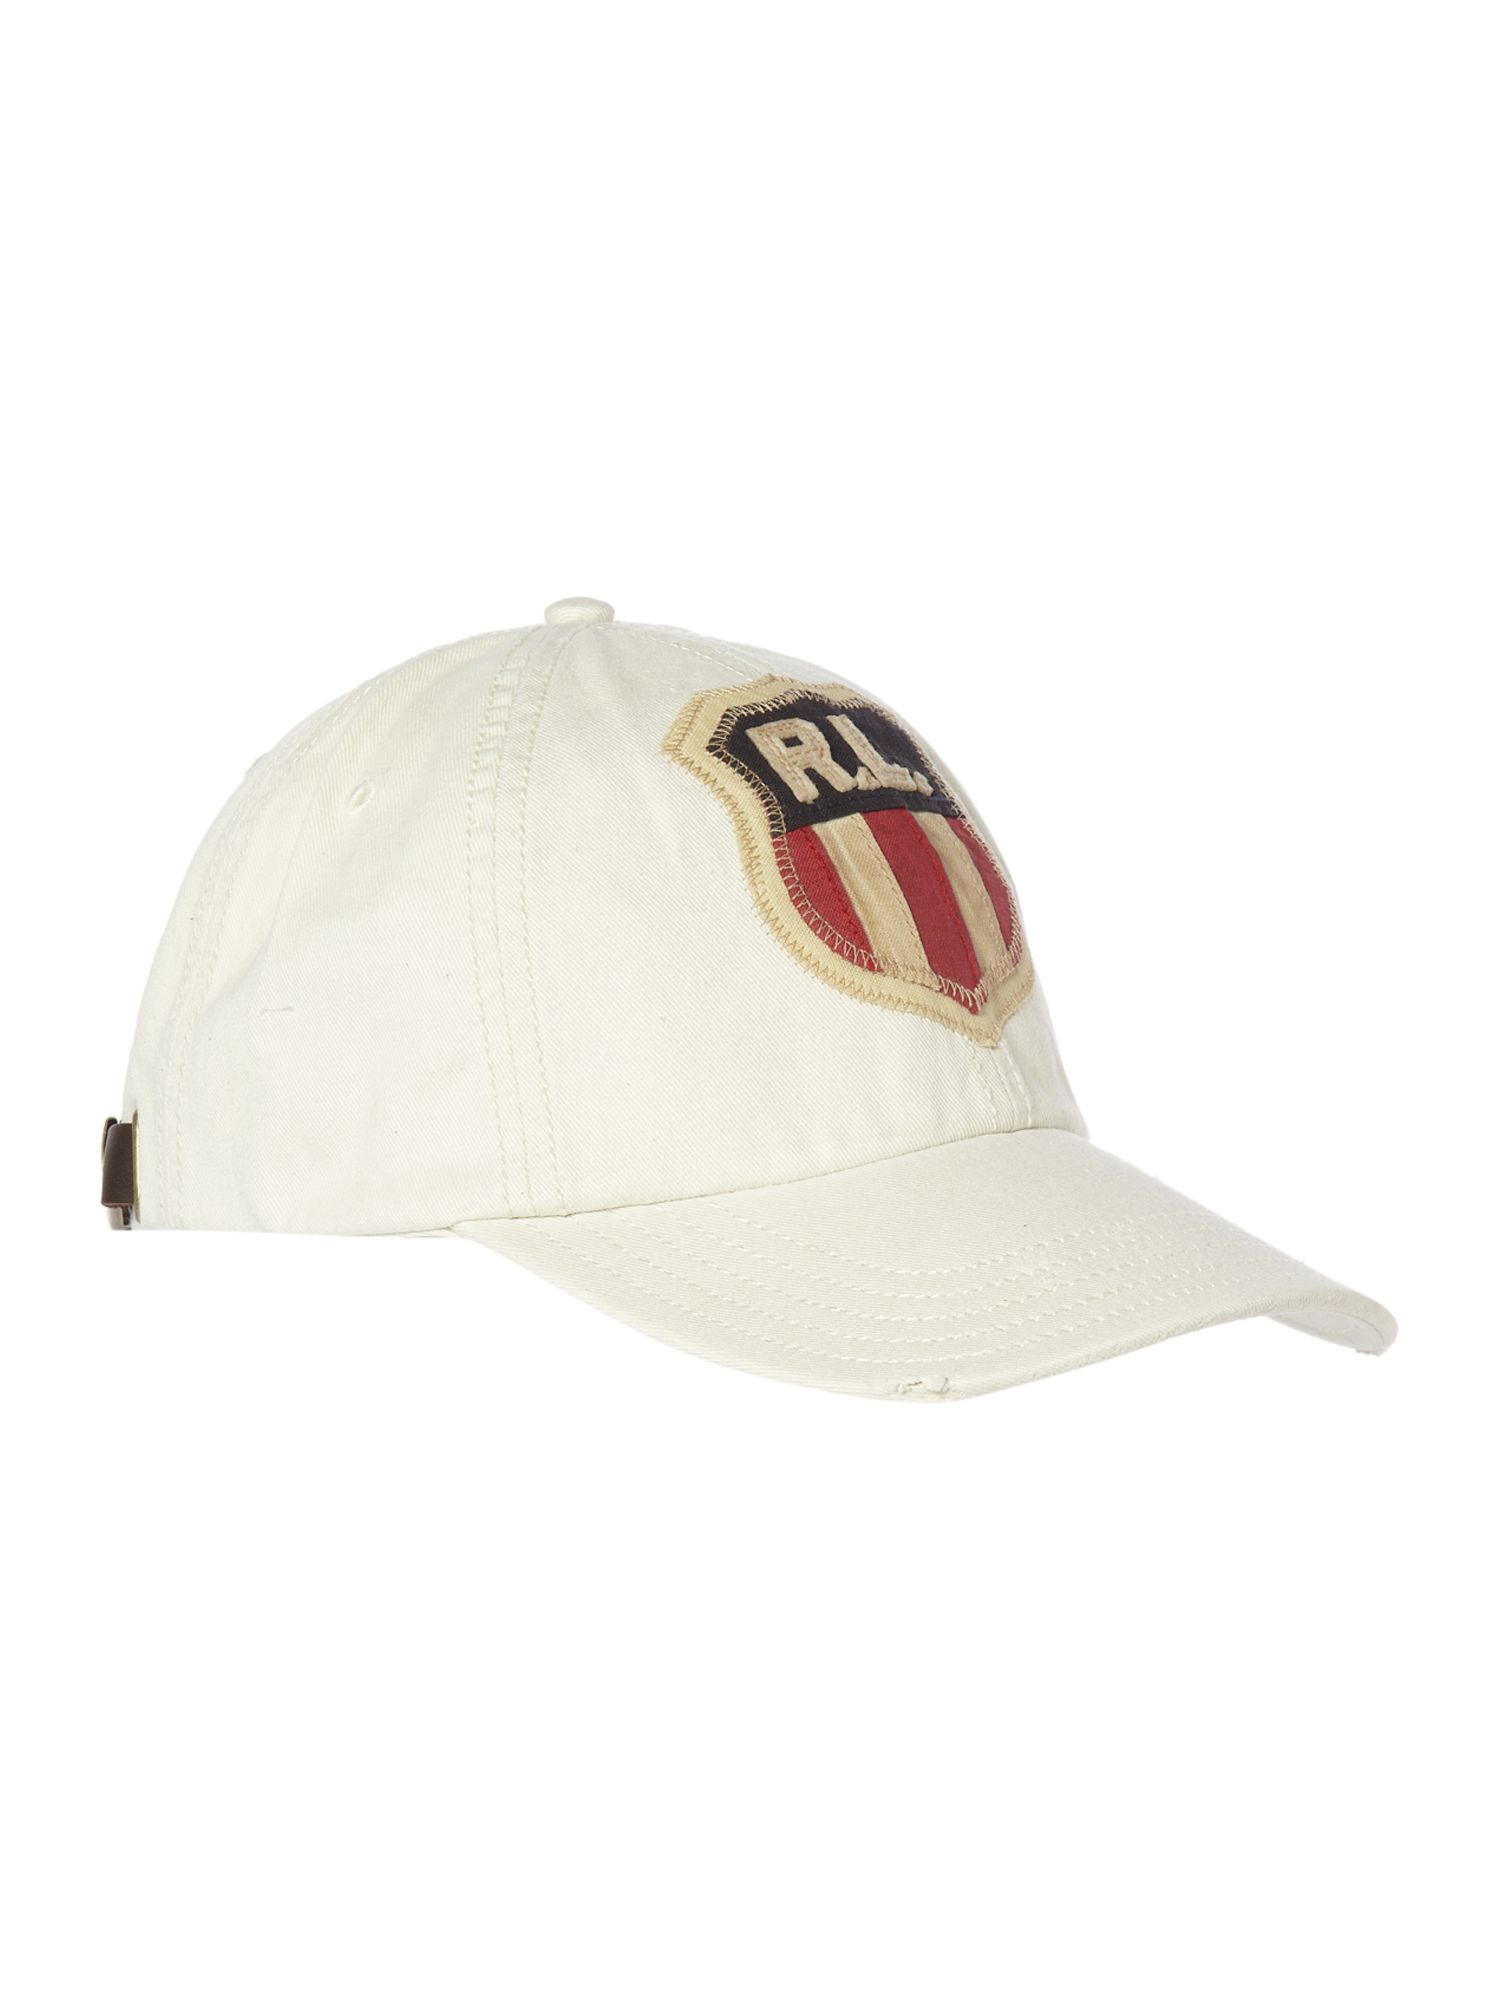 Polo Jeans Baseball cap with flag motif - Sand `One product image